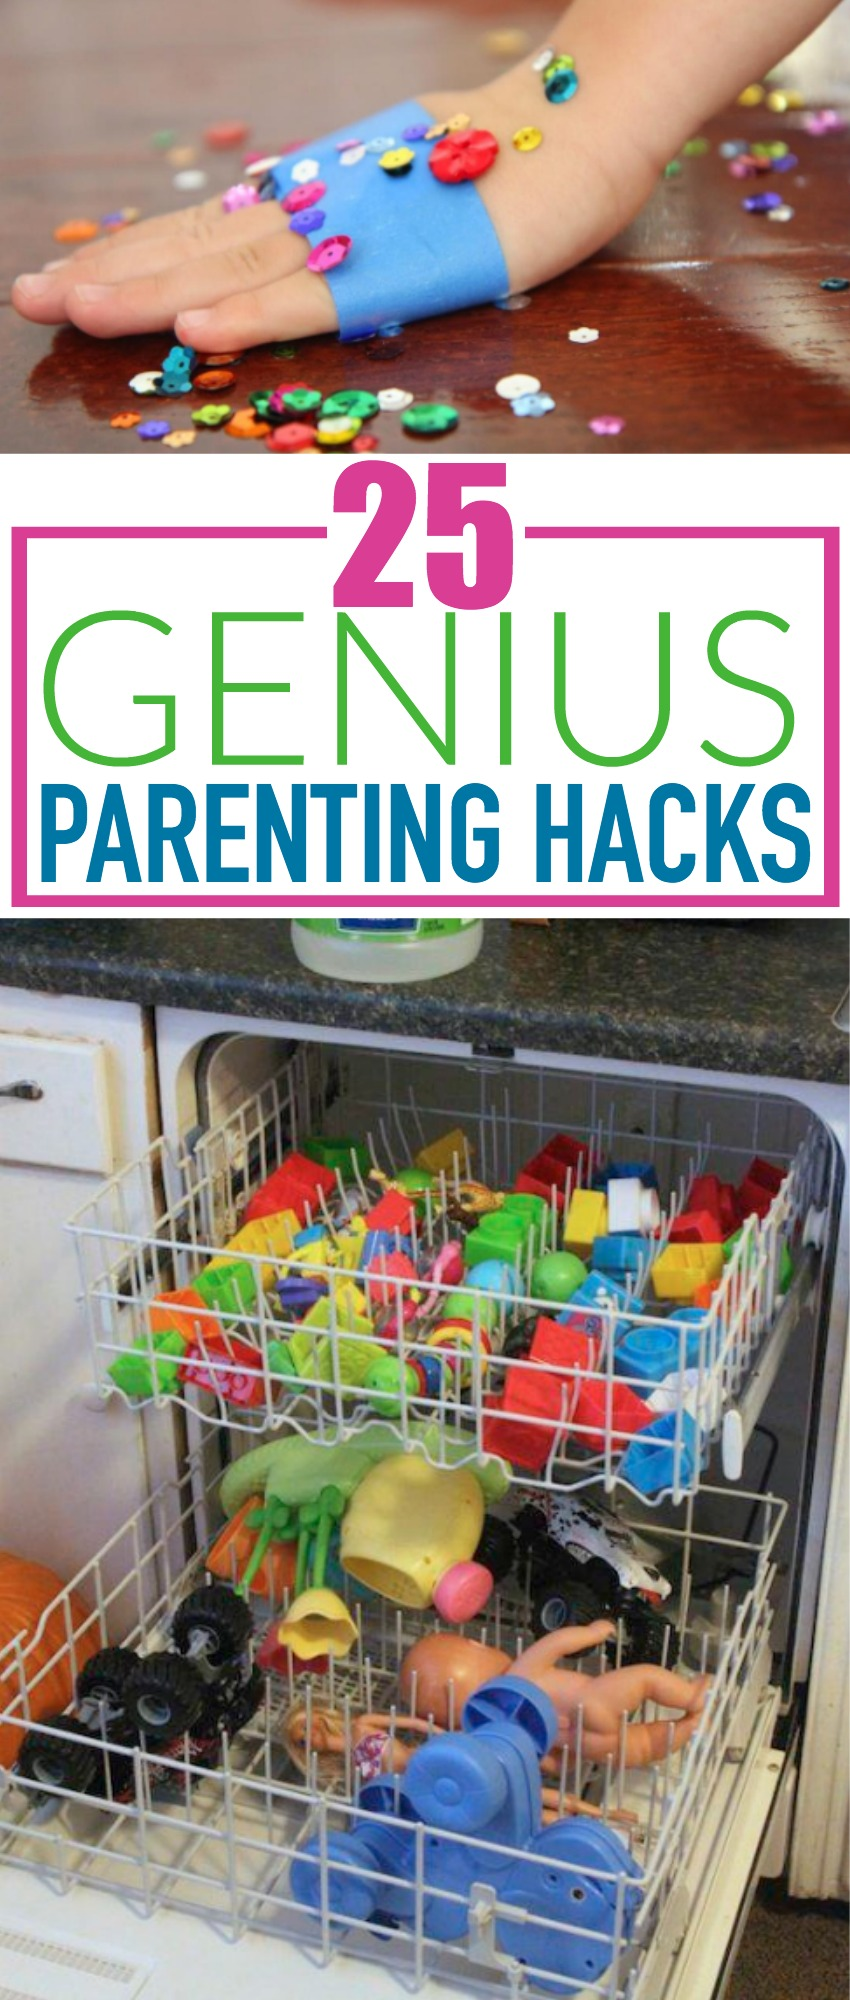 diy parenting hacks, parenting tips, great tips for parents